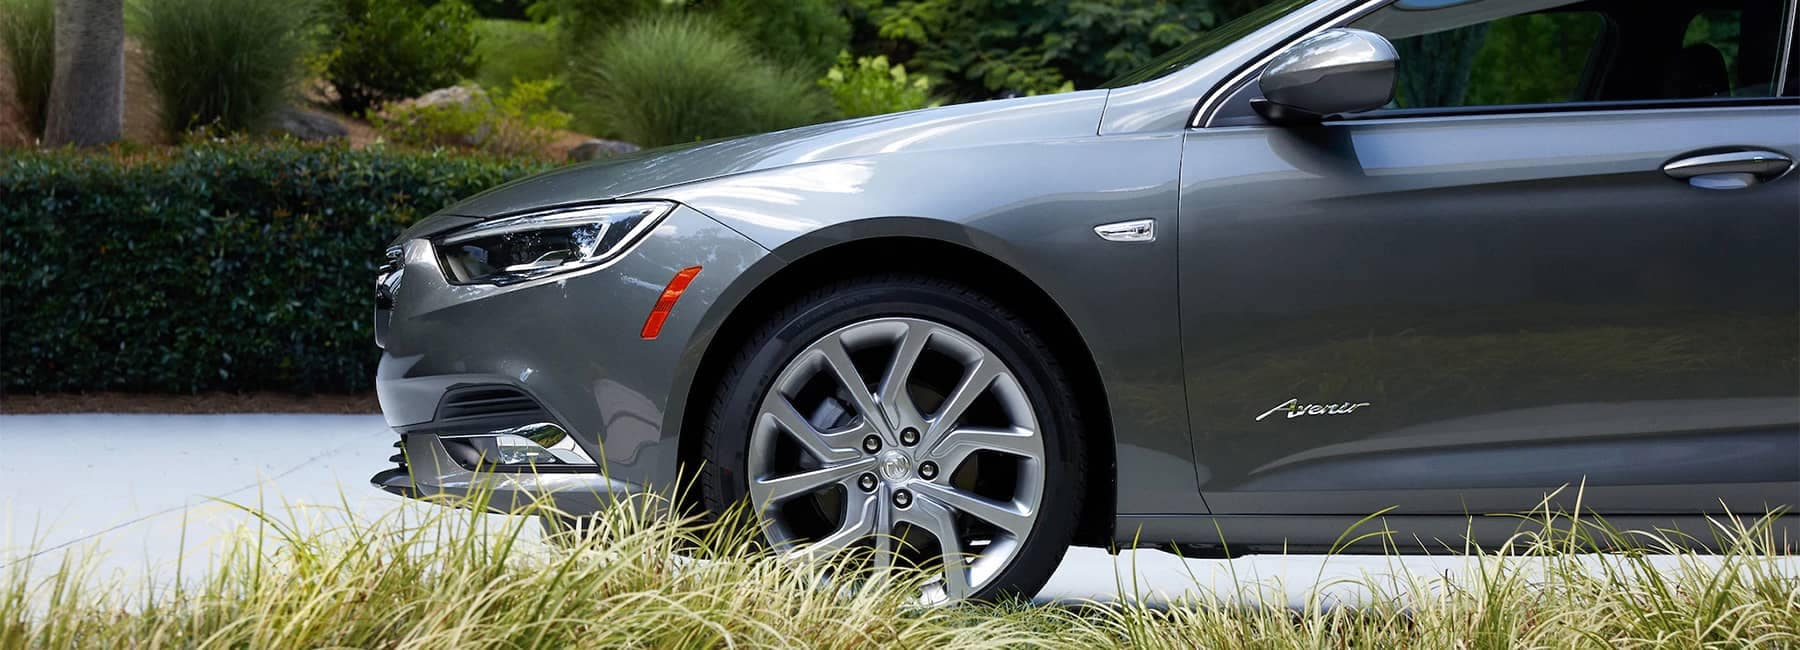 2020 Buick Regal Avenir Sportback Luxury Sedan exterior side obscured wheel view